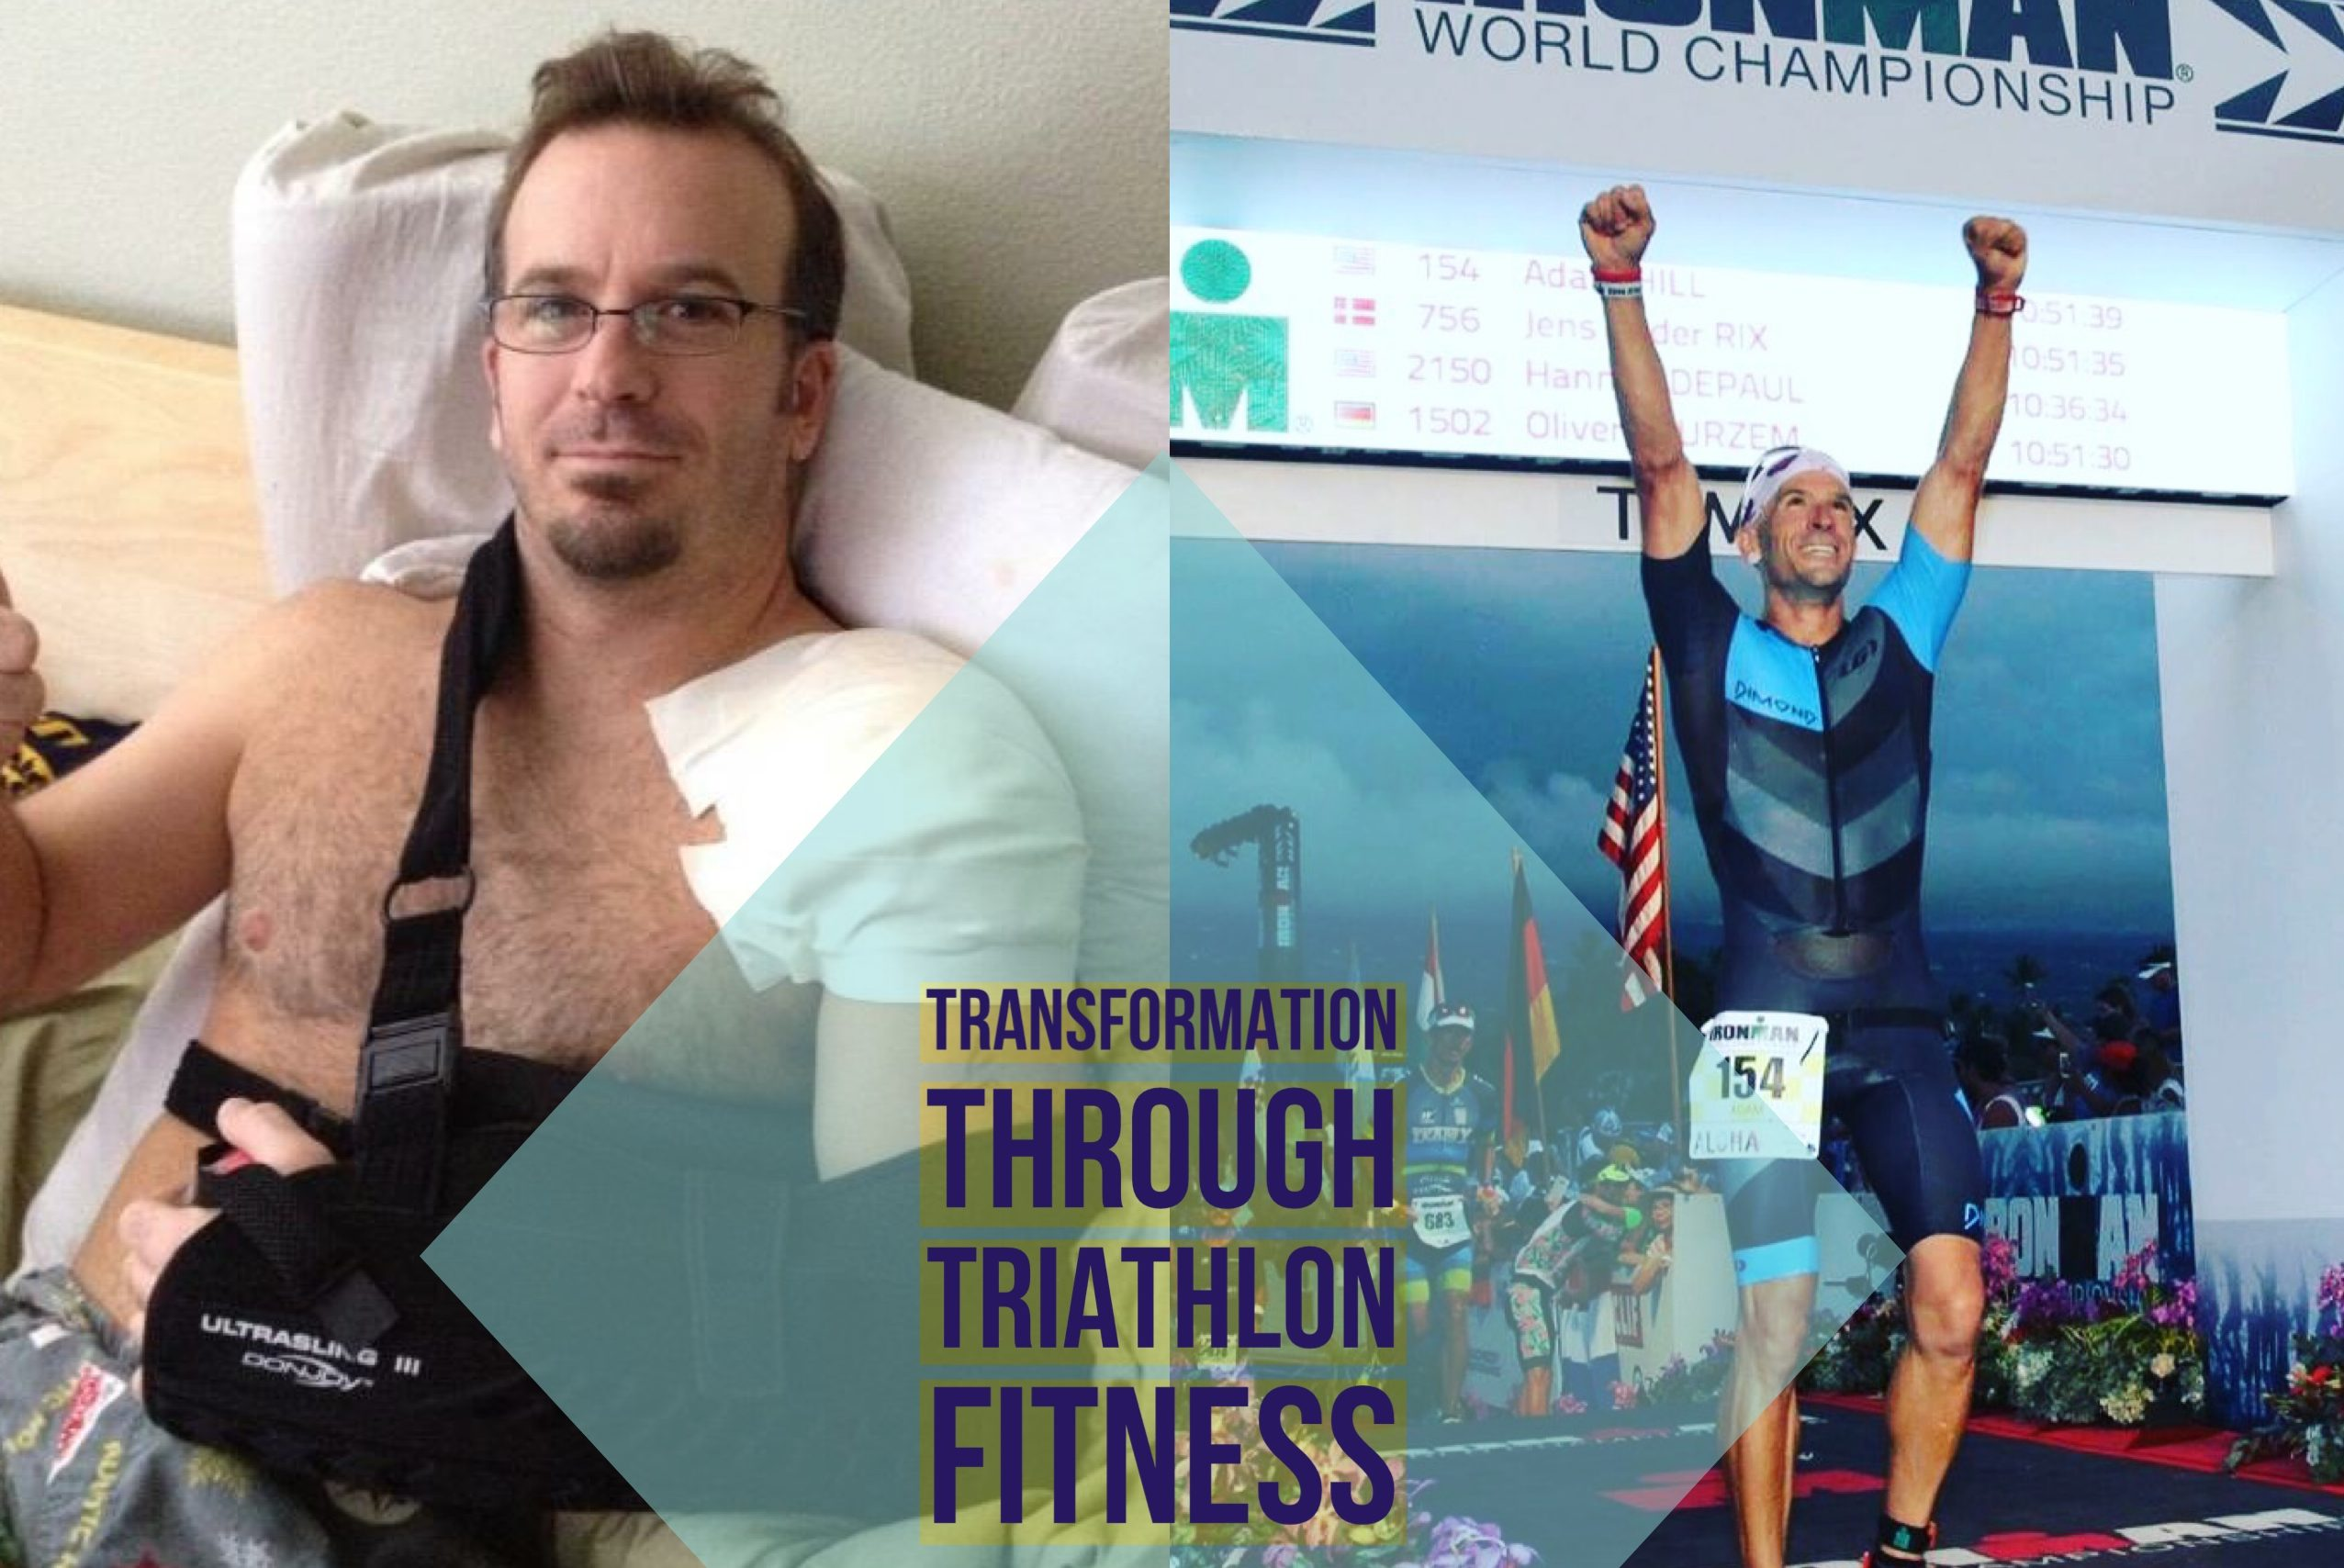 Now Available! Transform yourself into a triathlete with this 12 week, intensive triathlon fitness program for everyone!